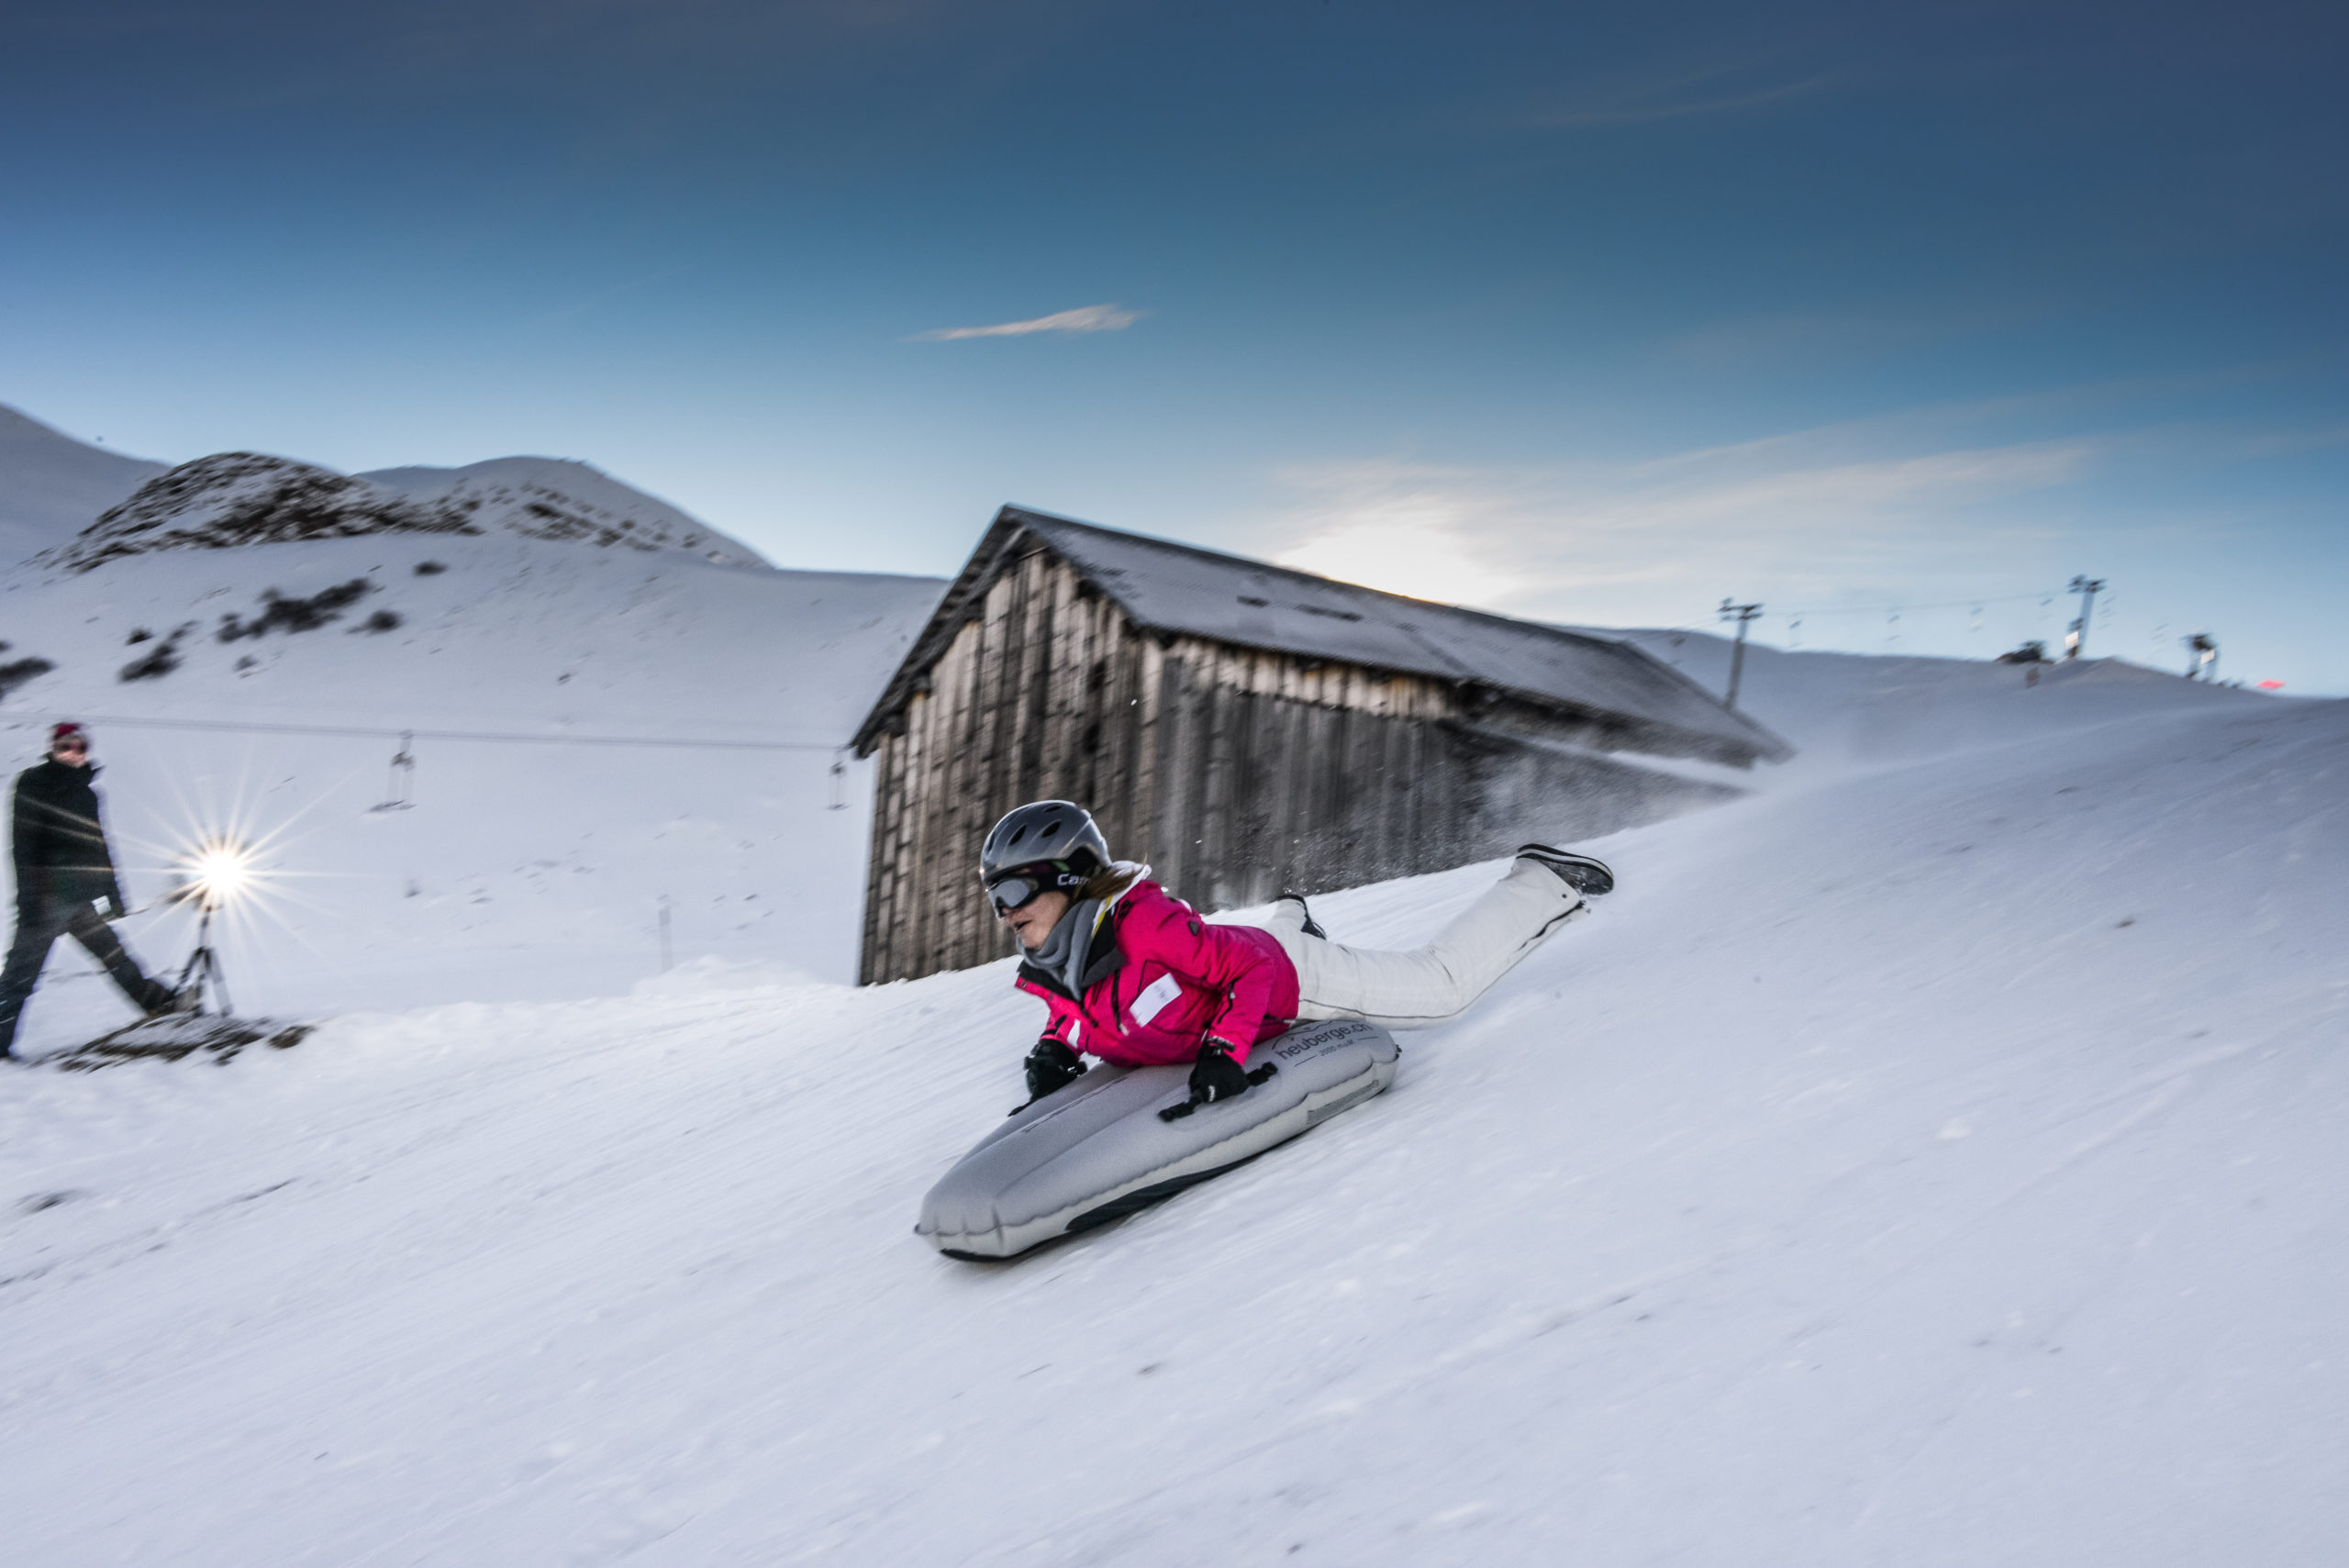 airboard_23-12-2013_2241-2